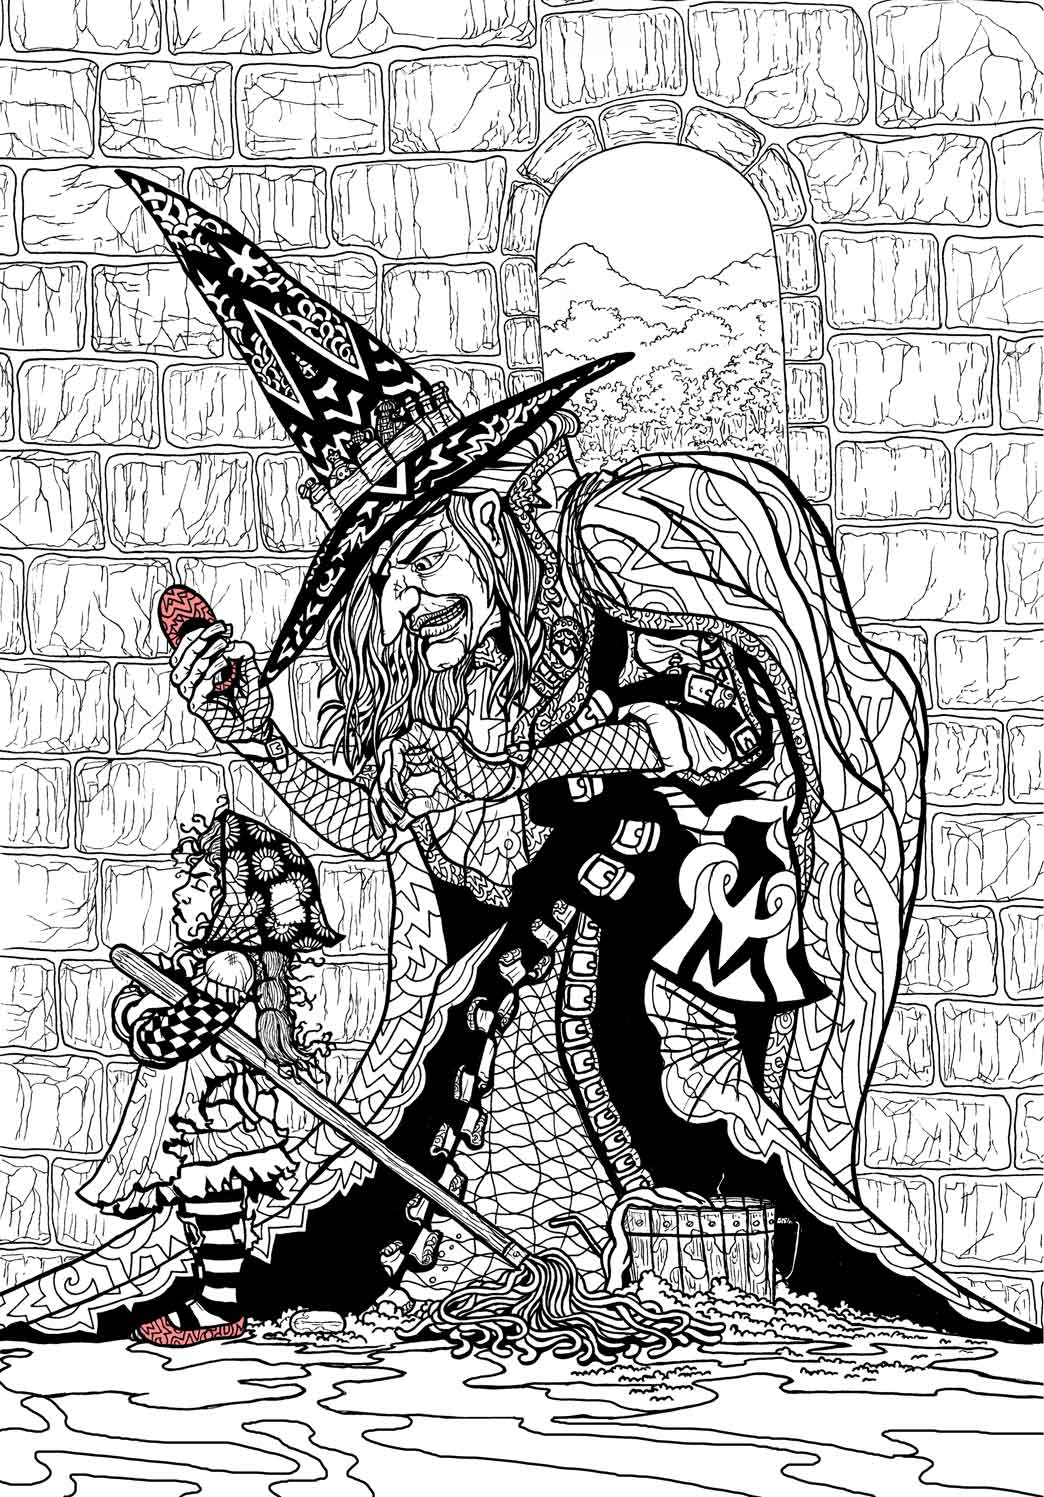 Wizard Of Oz Coloring Book By Ethan Mongin At Coroflot